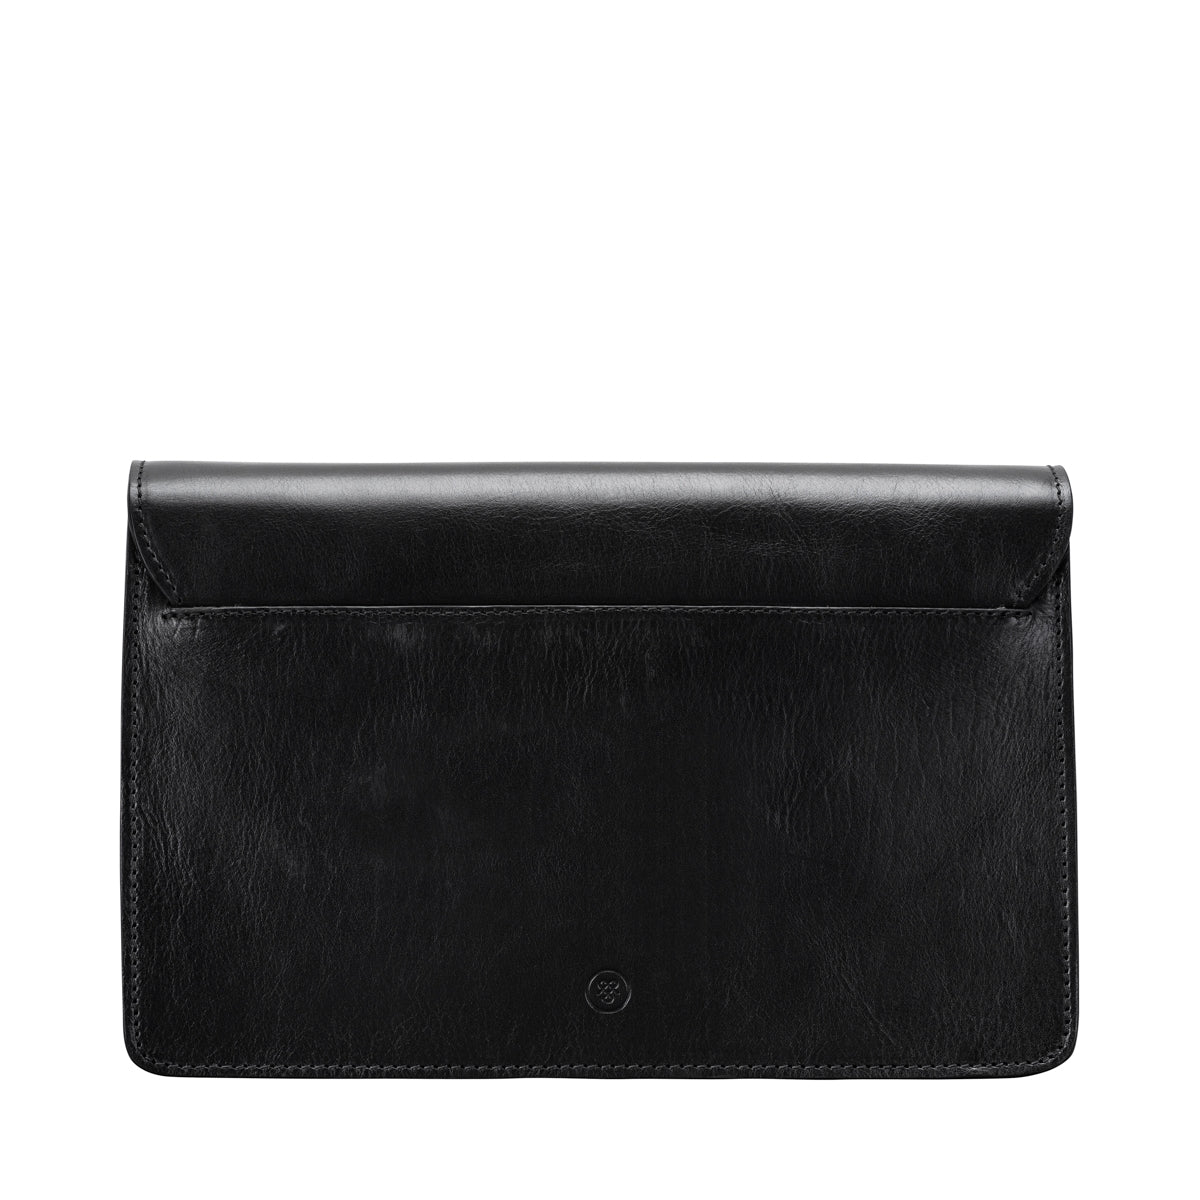 Image 4 of the 'Santino' Black Handmade Veg-Tanned Leather Wrist Bag